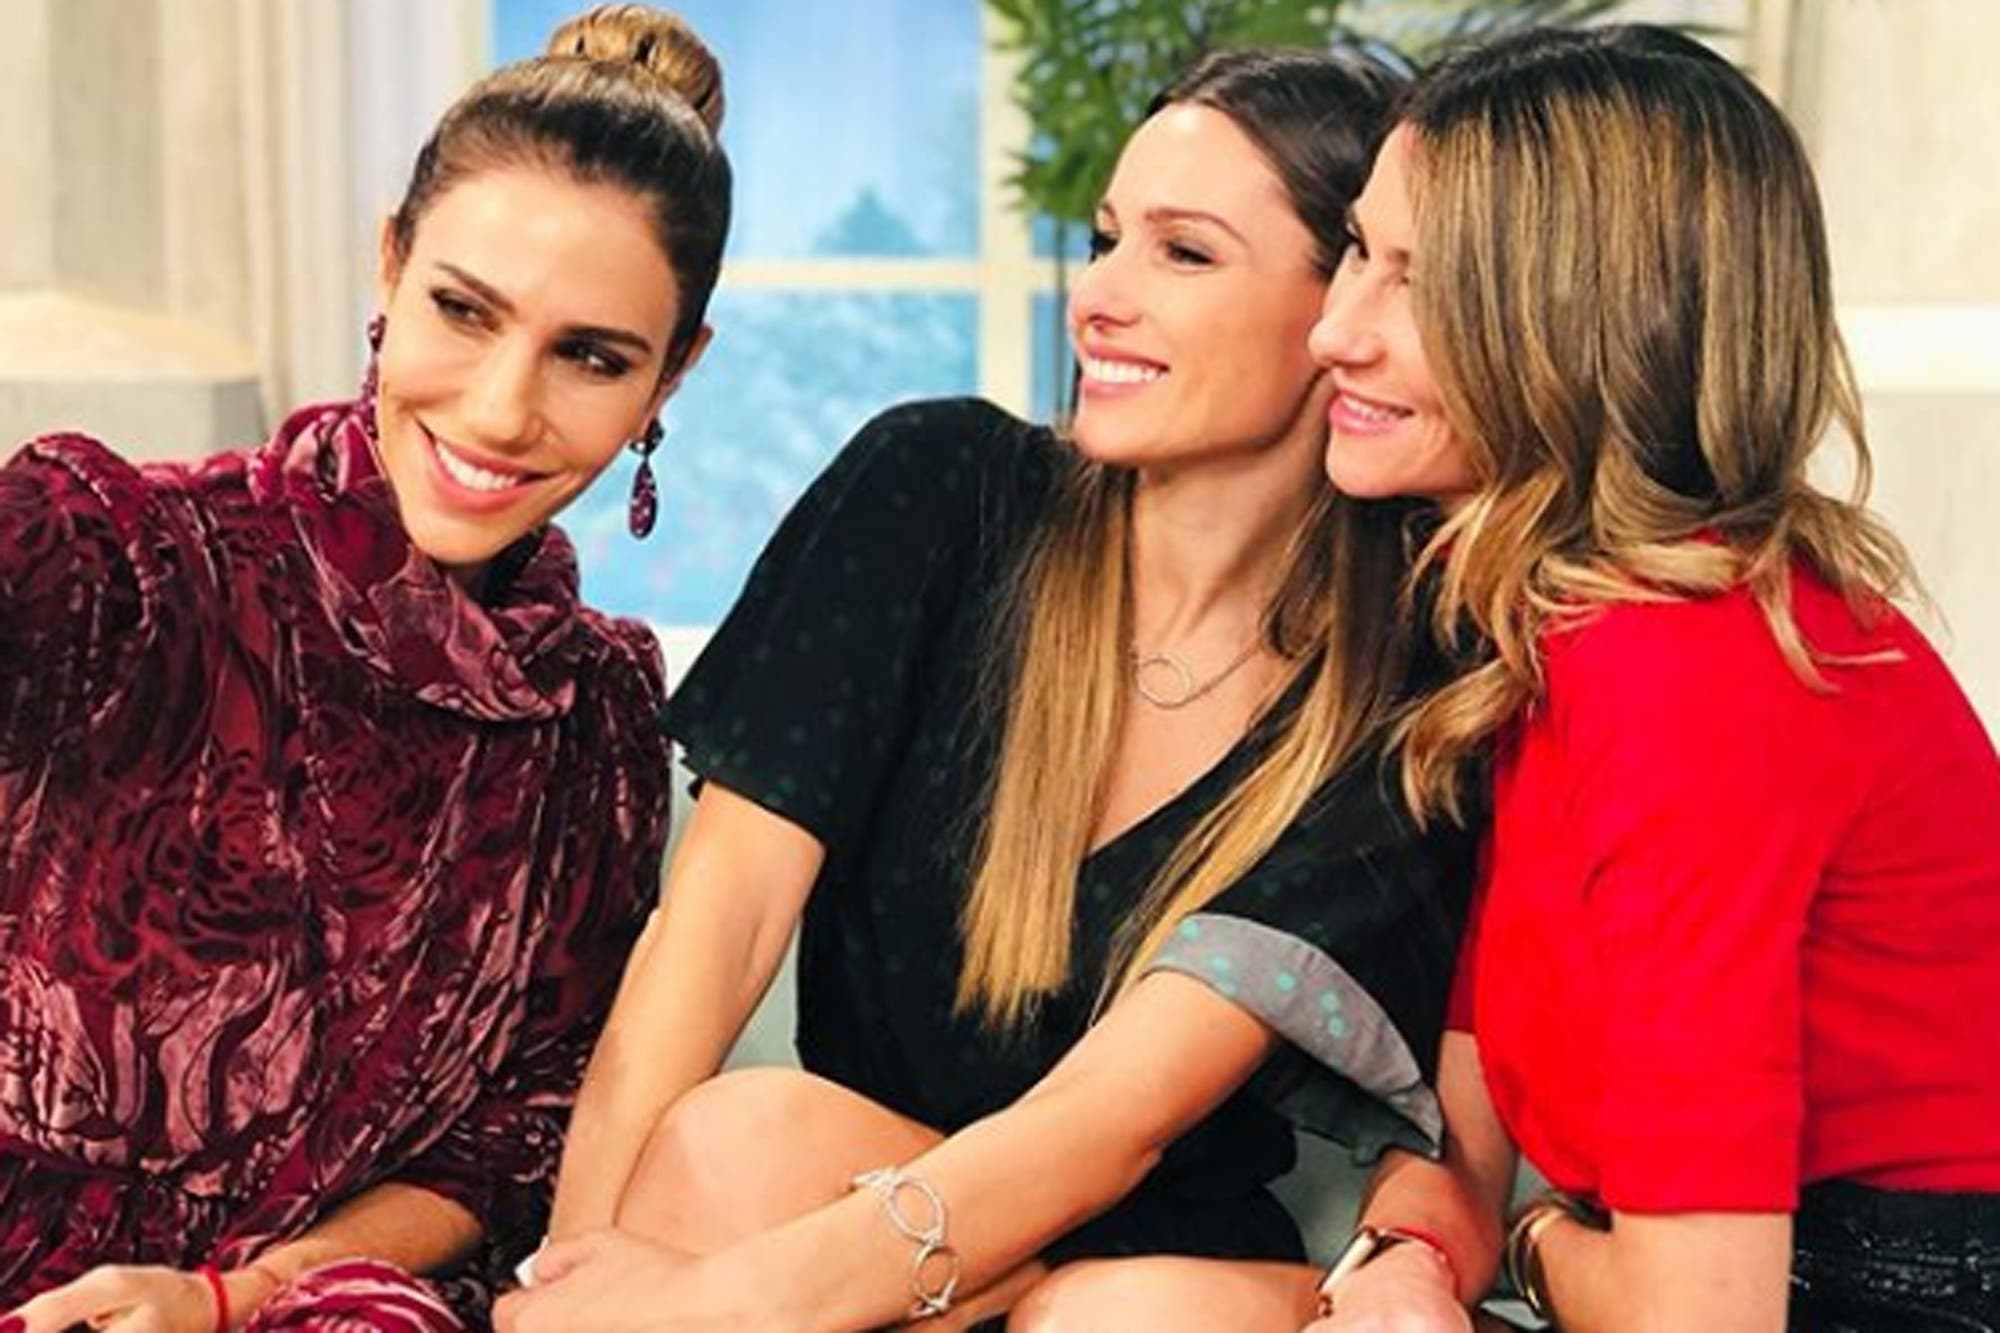 Pampita Ardohain no quiere strippers en su despedida de soltera